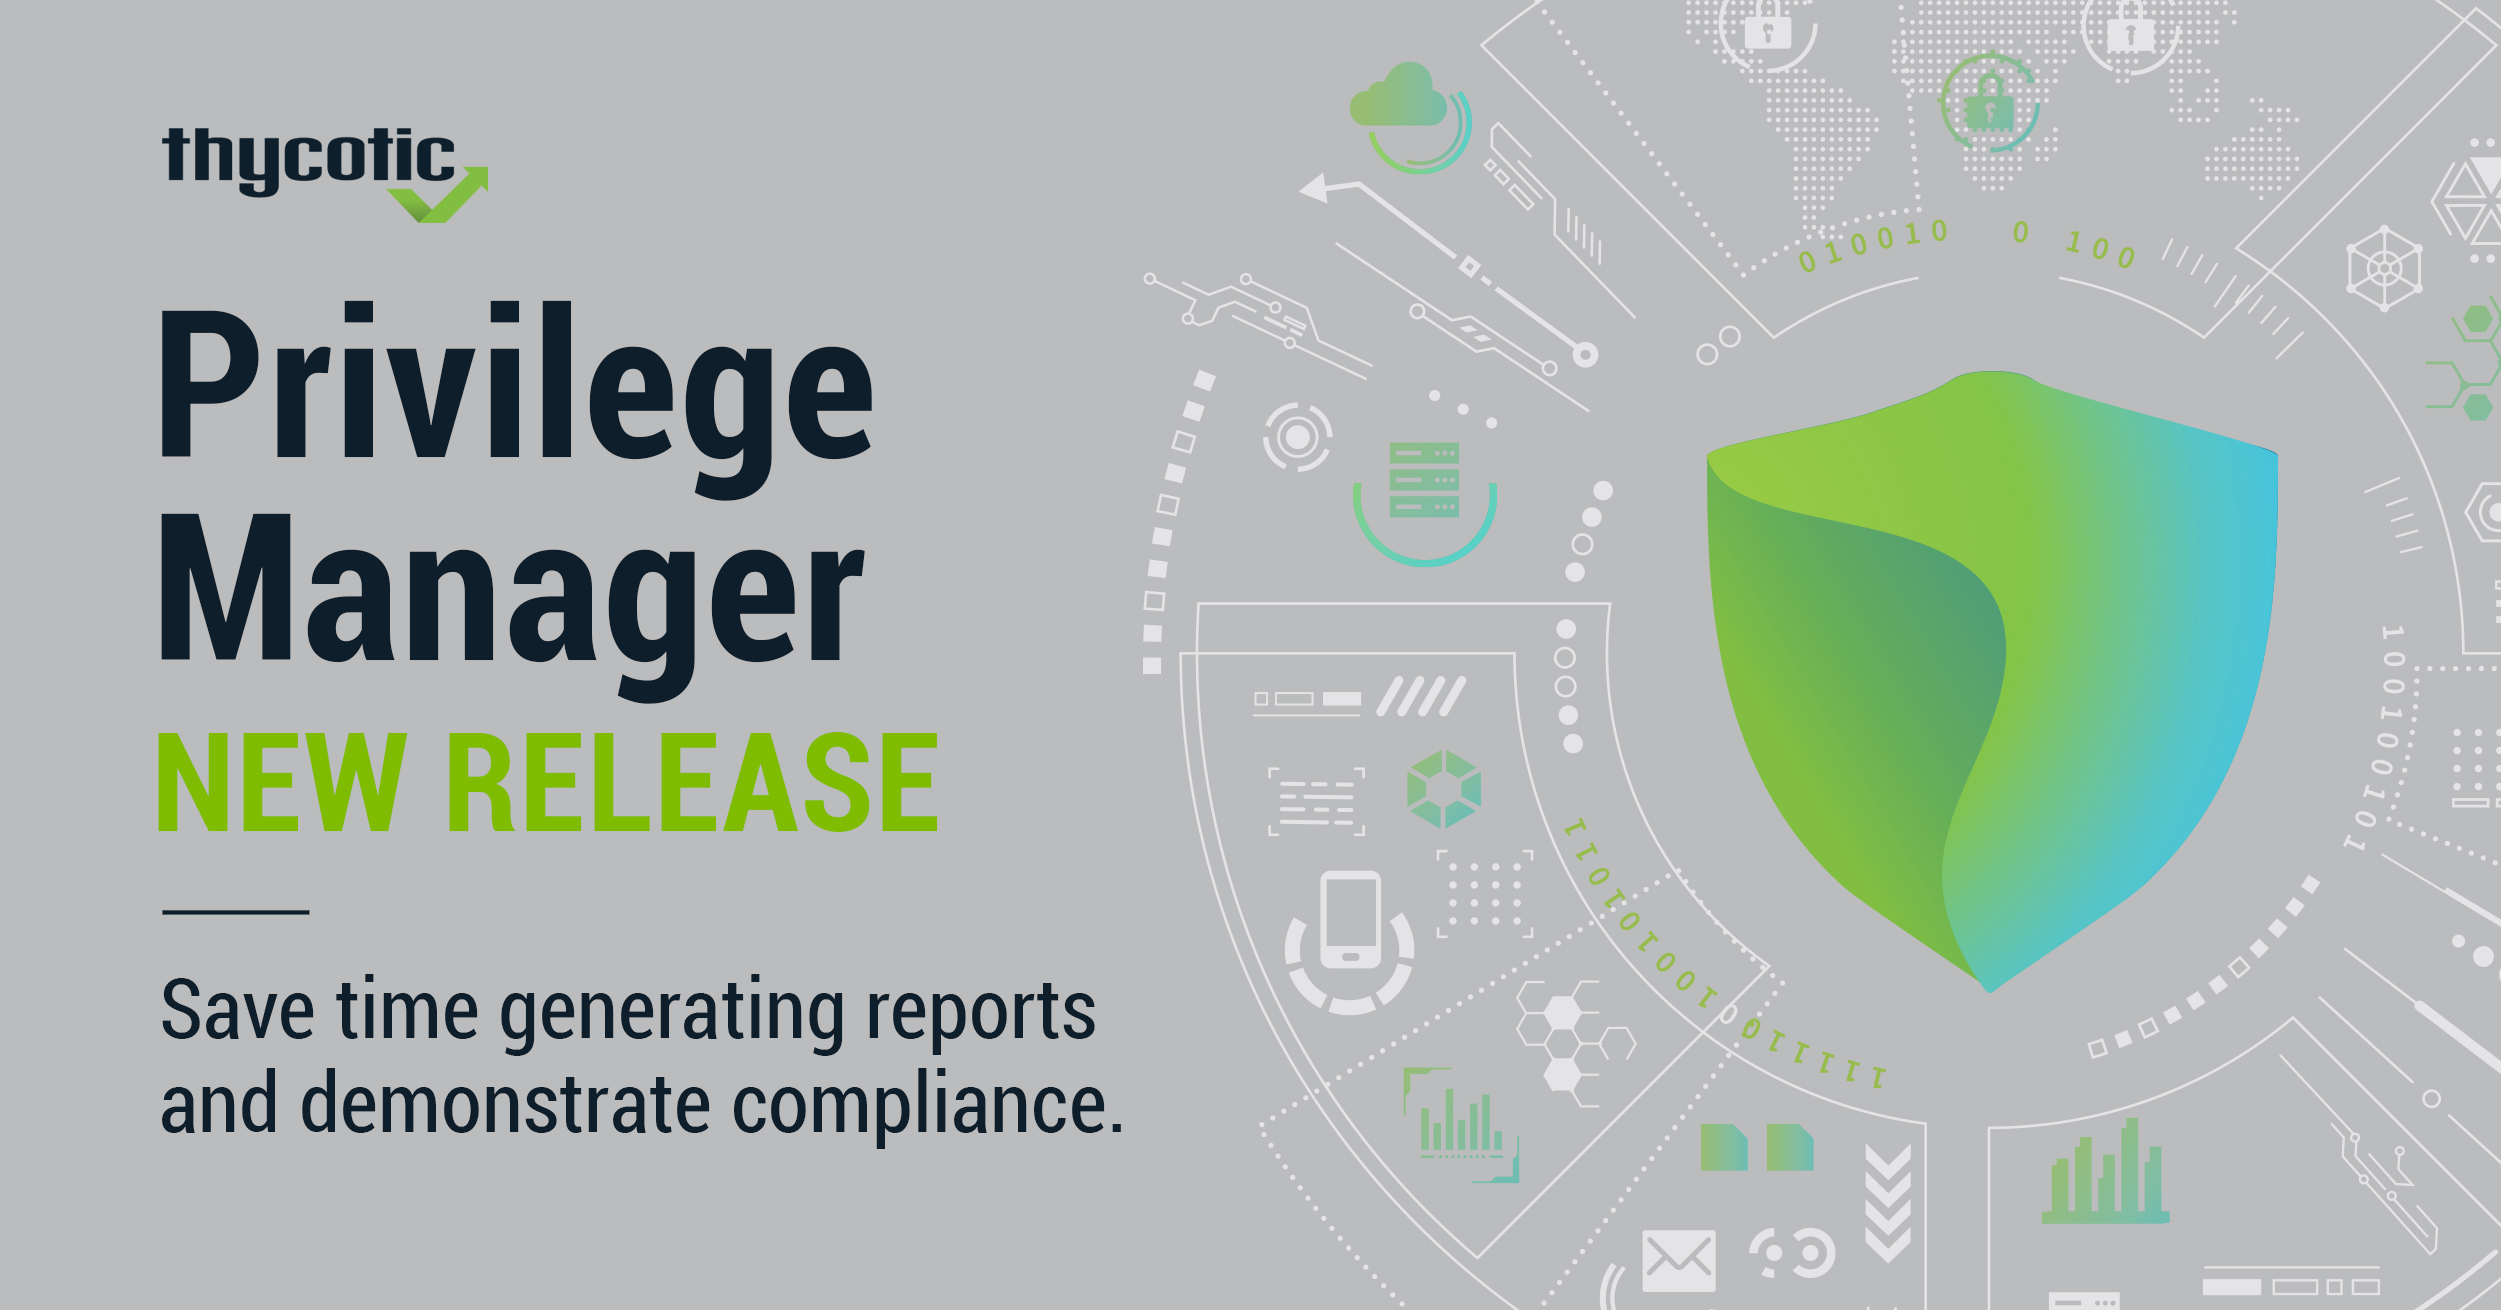 Save time generating reports and demonstrate compliance